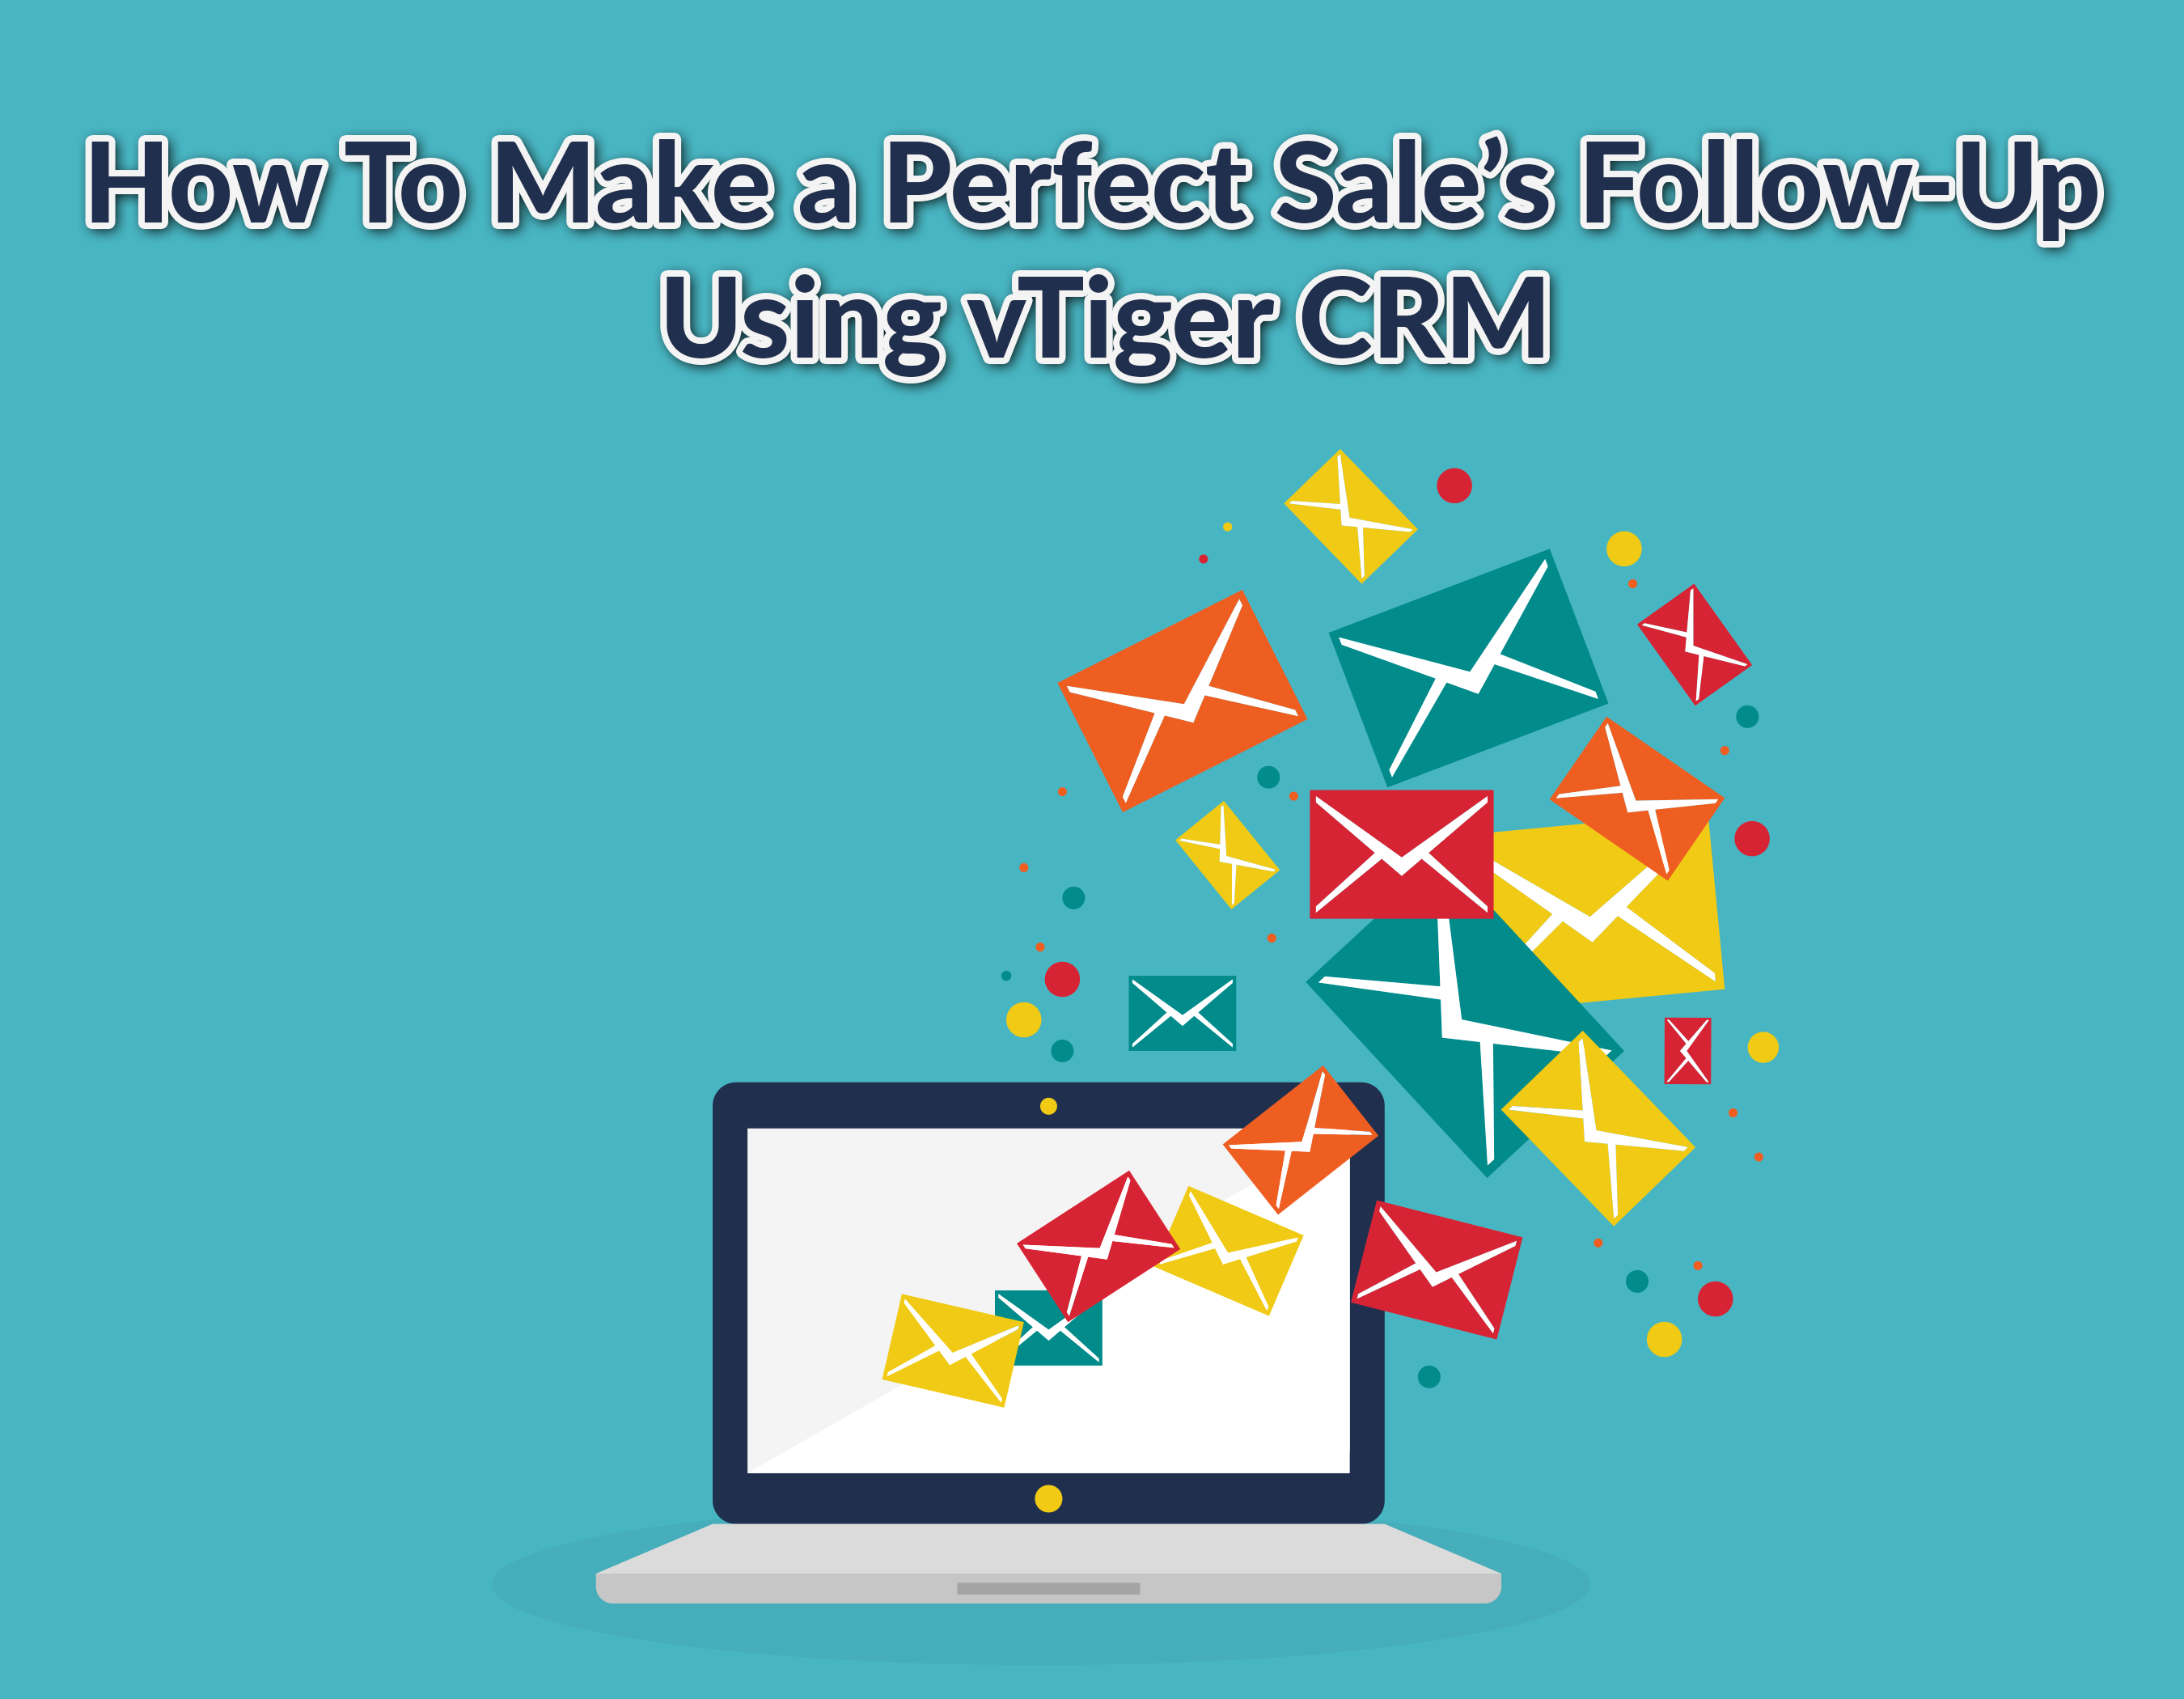 How To Make The Perfect Sales Follow-Up Using vTiger CRM